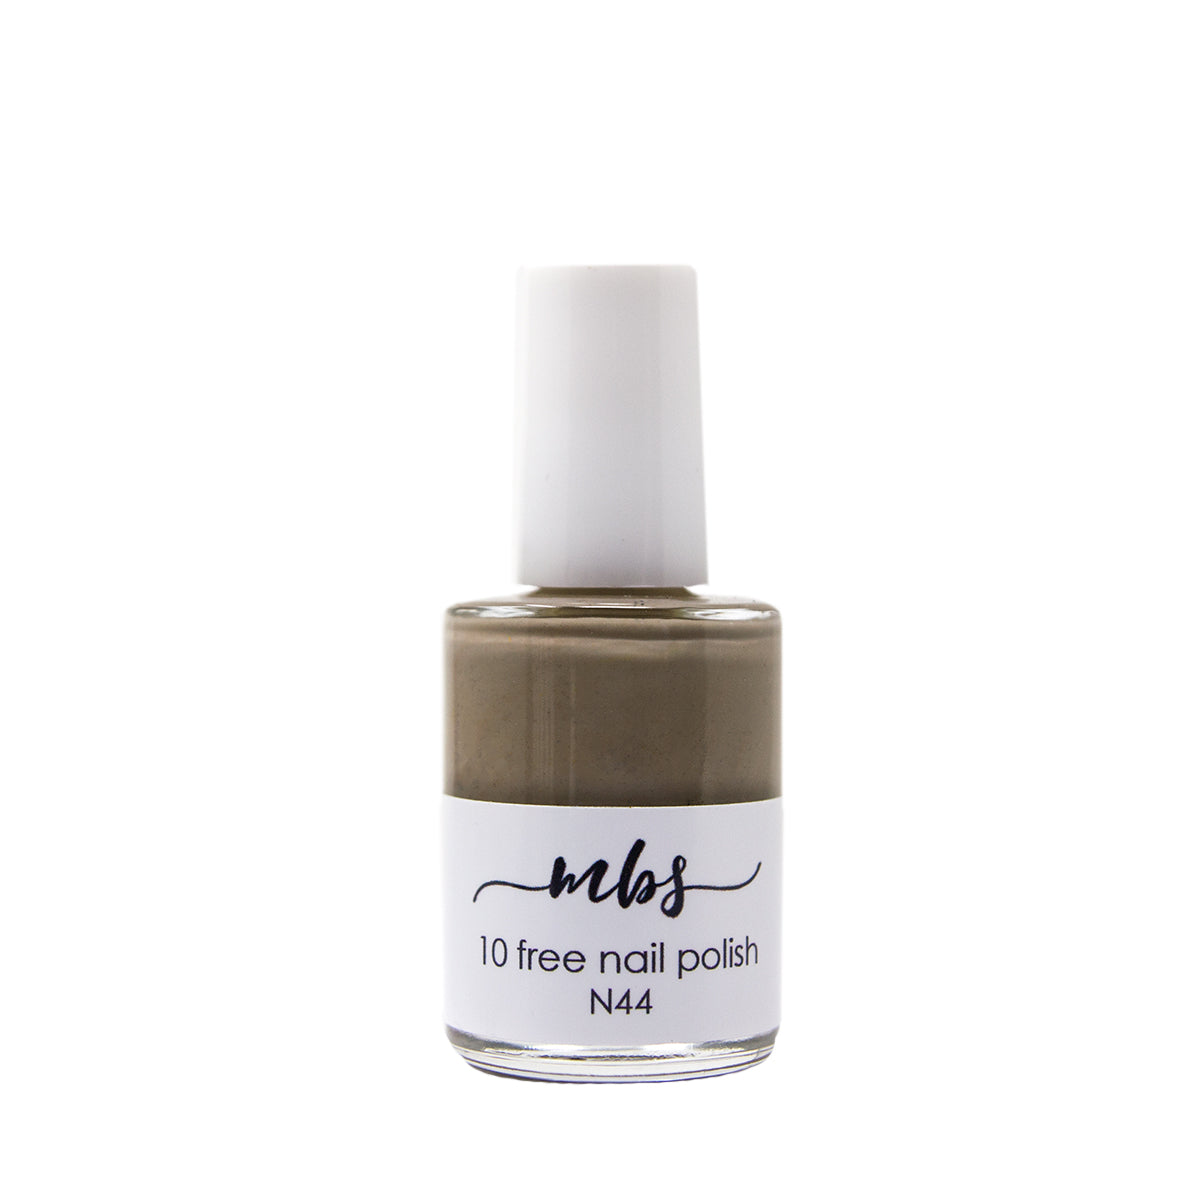 Nail Polish N44-Nail Polish-Morning Blossom Studio